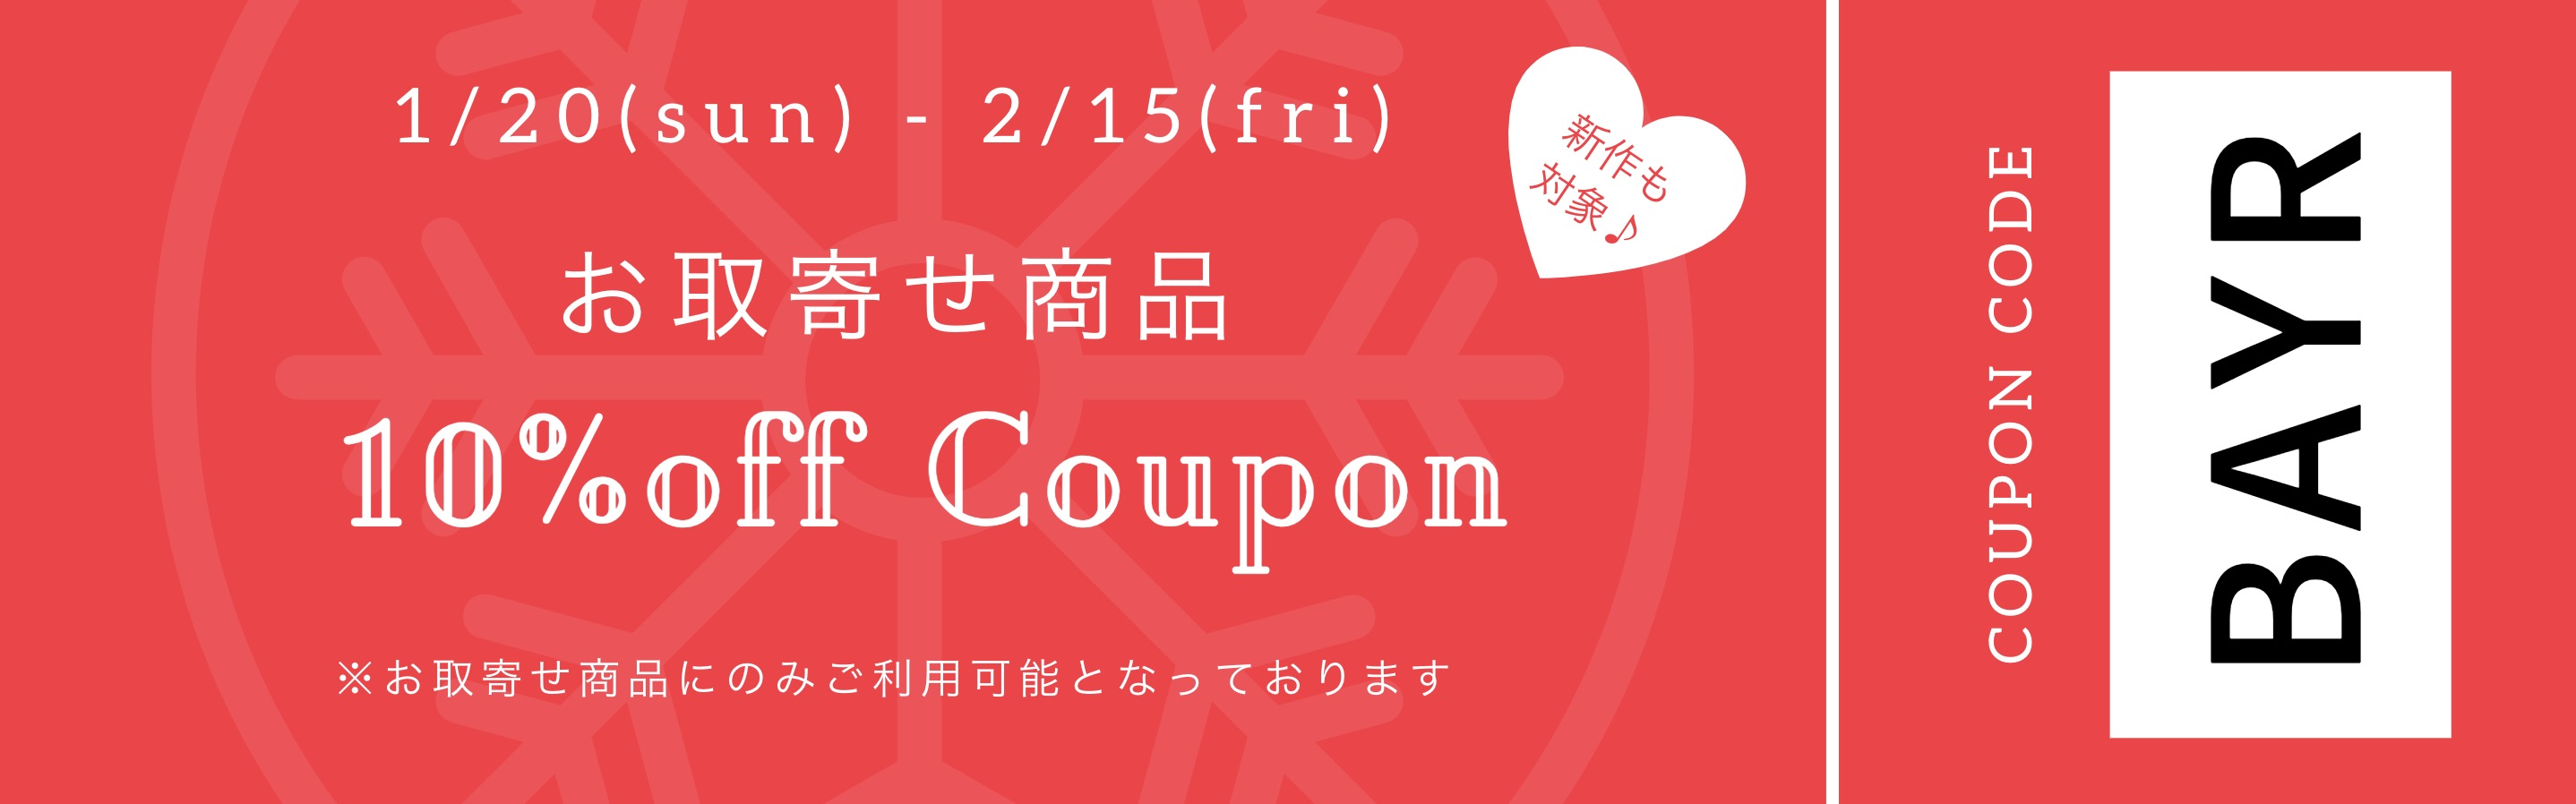 holiday coupon 2019